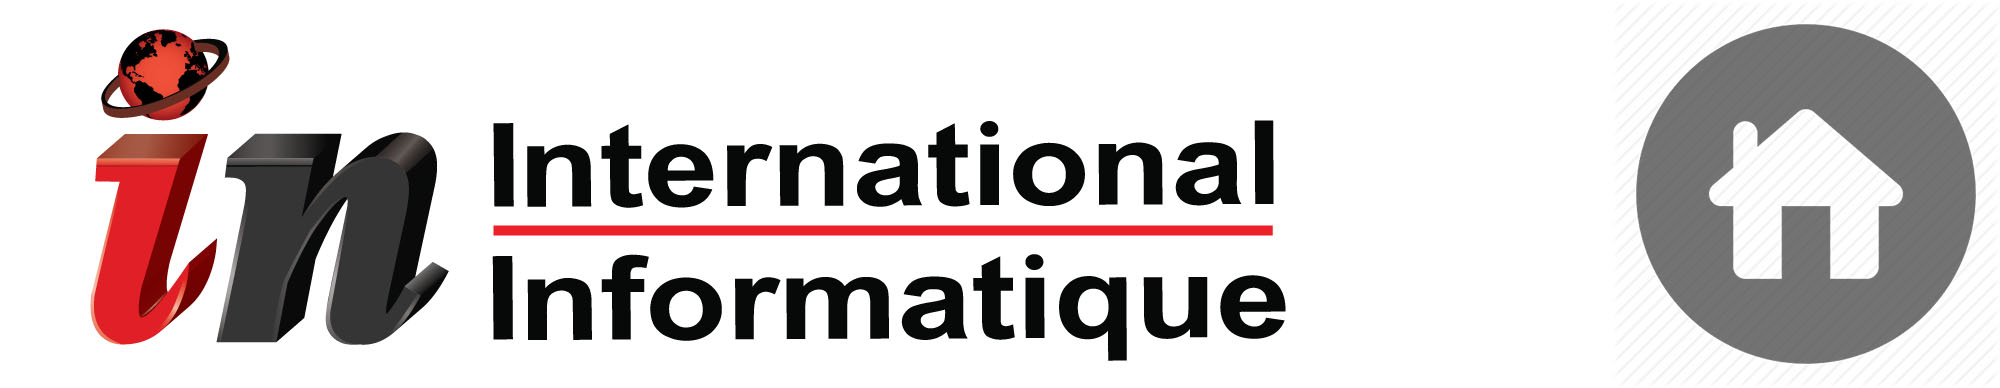 International Informatique